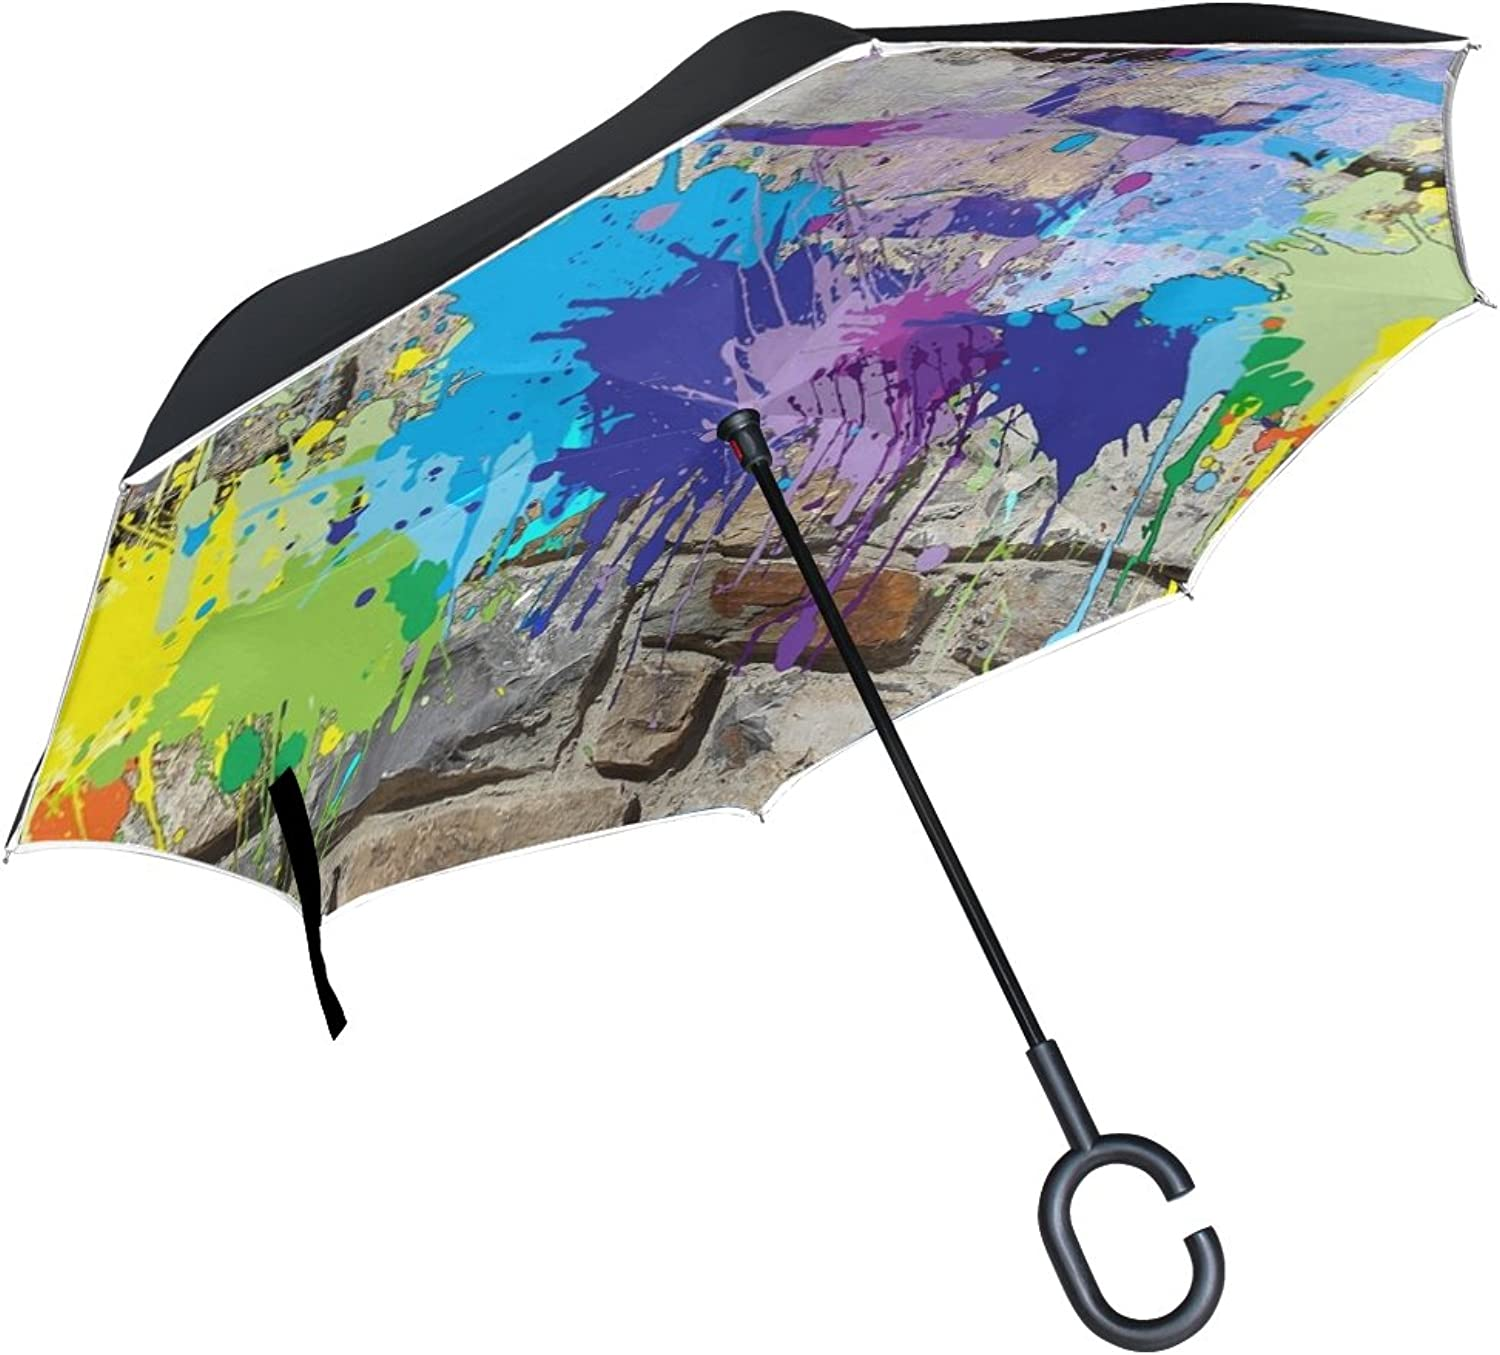 Double Layer Ingreened Painting Wall Mural colors Graffiti Umbrellas Reverse Folding Umbrella Windproof Uv Predection Big Straight Umbrella for Car Rain Outdoor with CShaped Handle